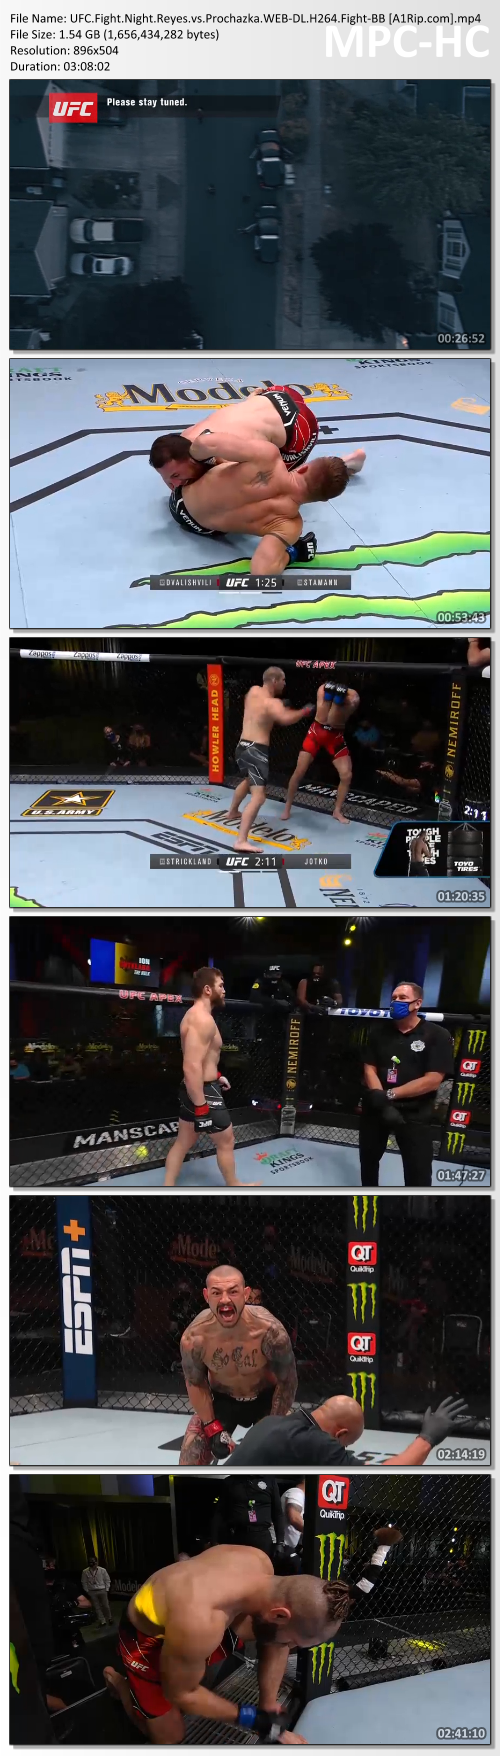 UFC.Fight_.Night_.Reyes_.vs_.Prochazka.WEB-DL.H264.Fight-BB-A1Rip.com_.mp4_thumbs.png